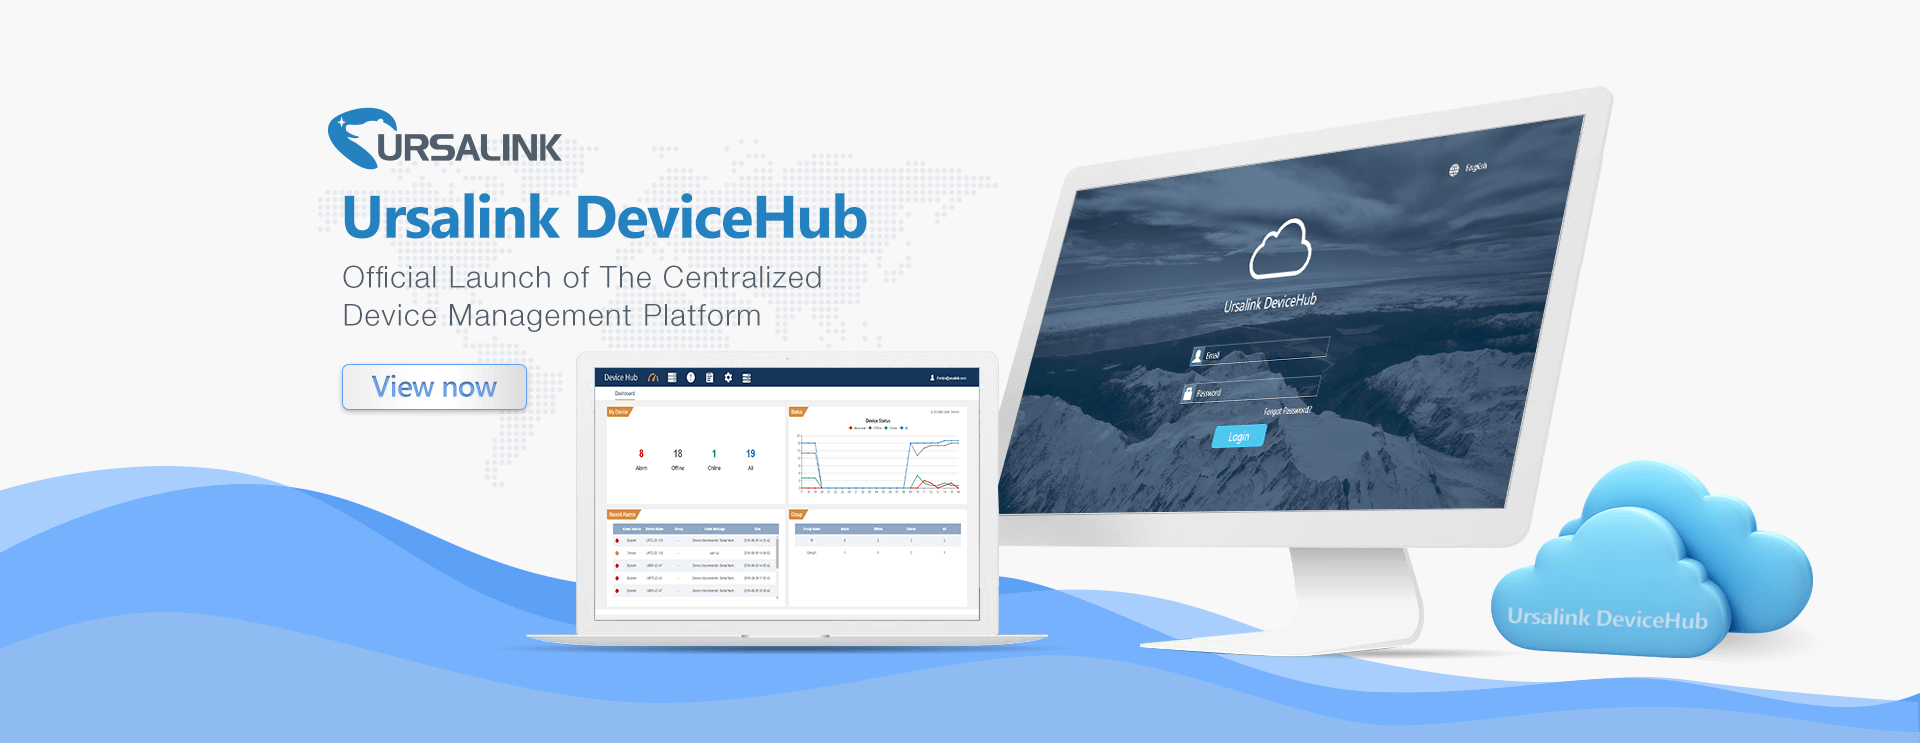 1920-X-743-devicehub-official-launch_banner